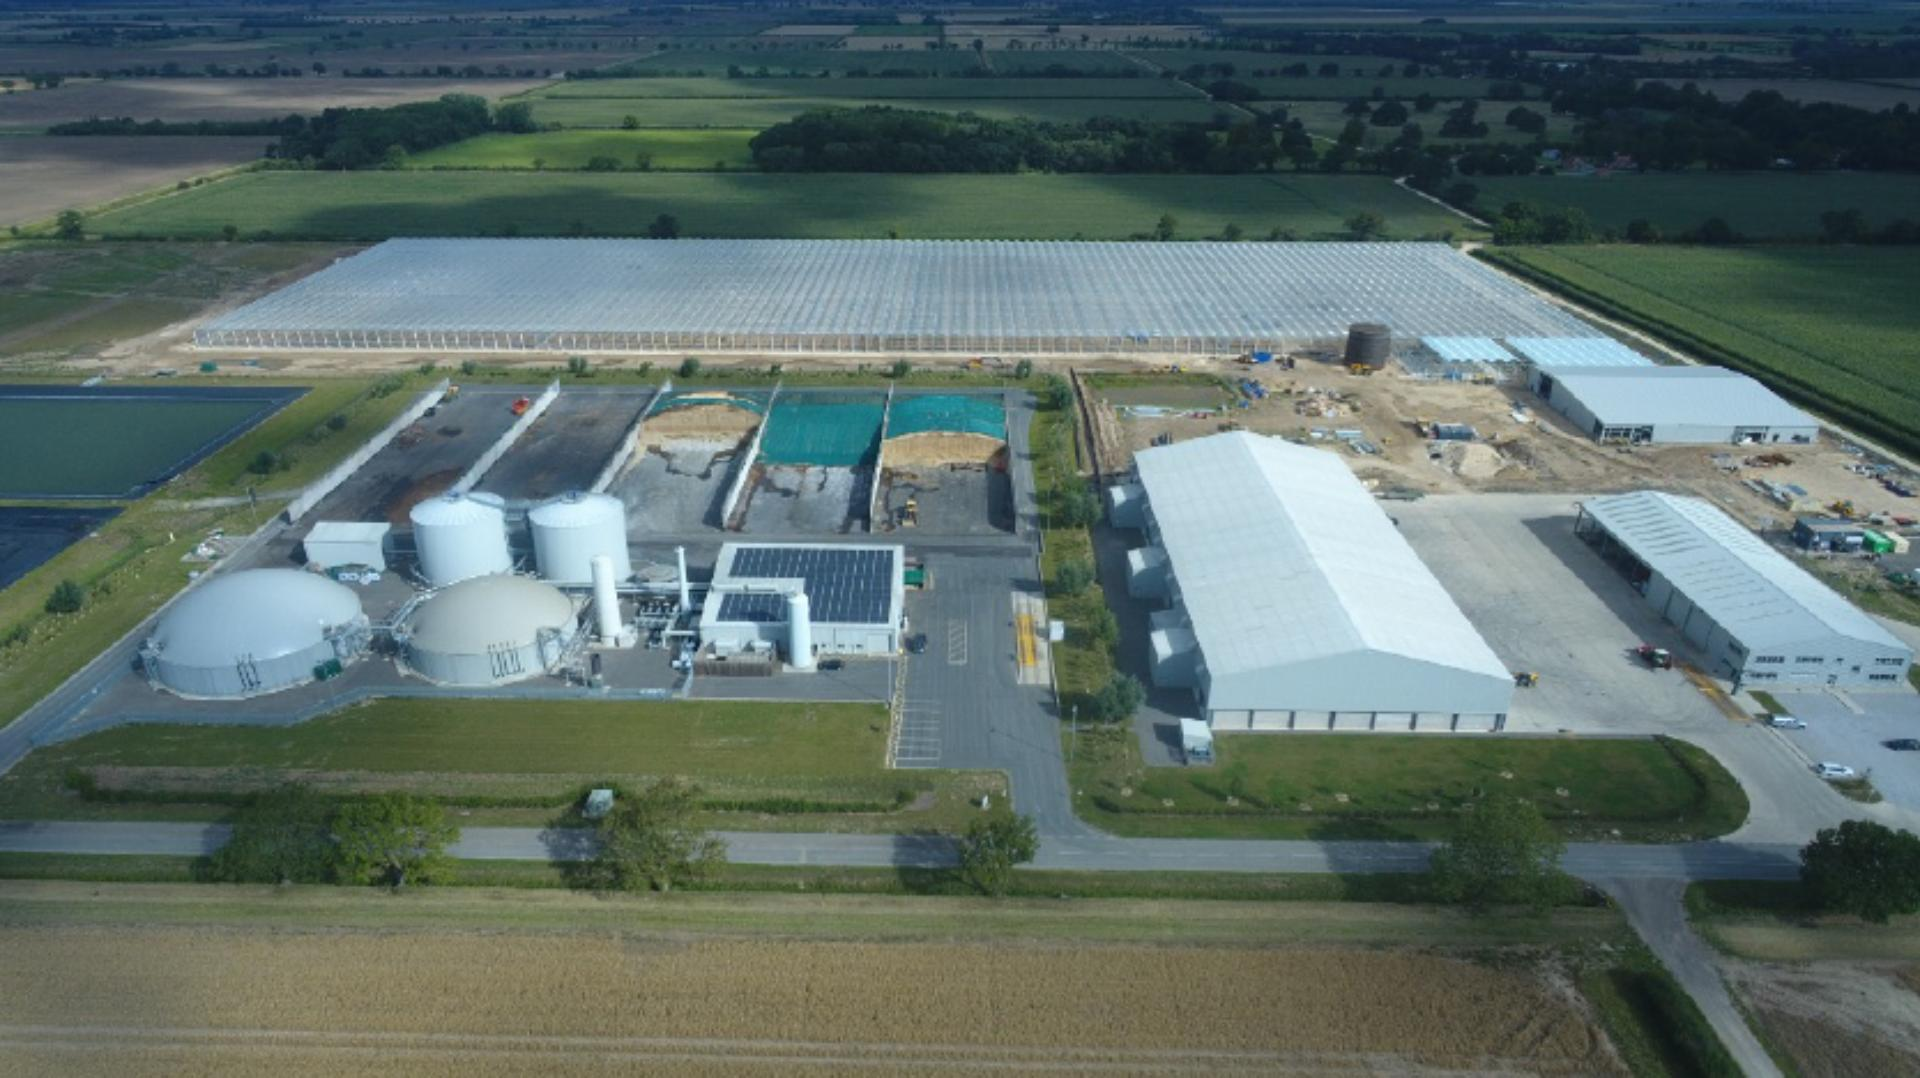 Aerial view of the anaerobic digester at Carrington, Lincolnshire